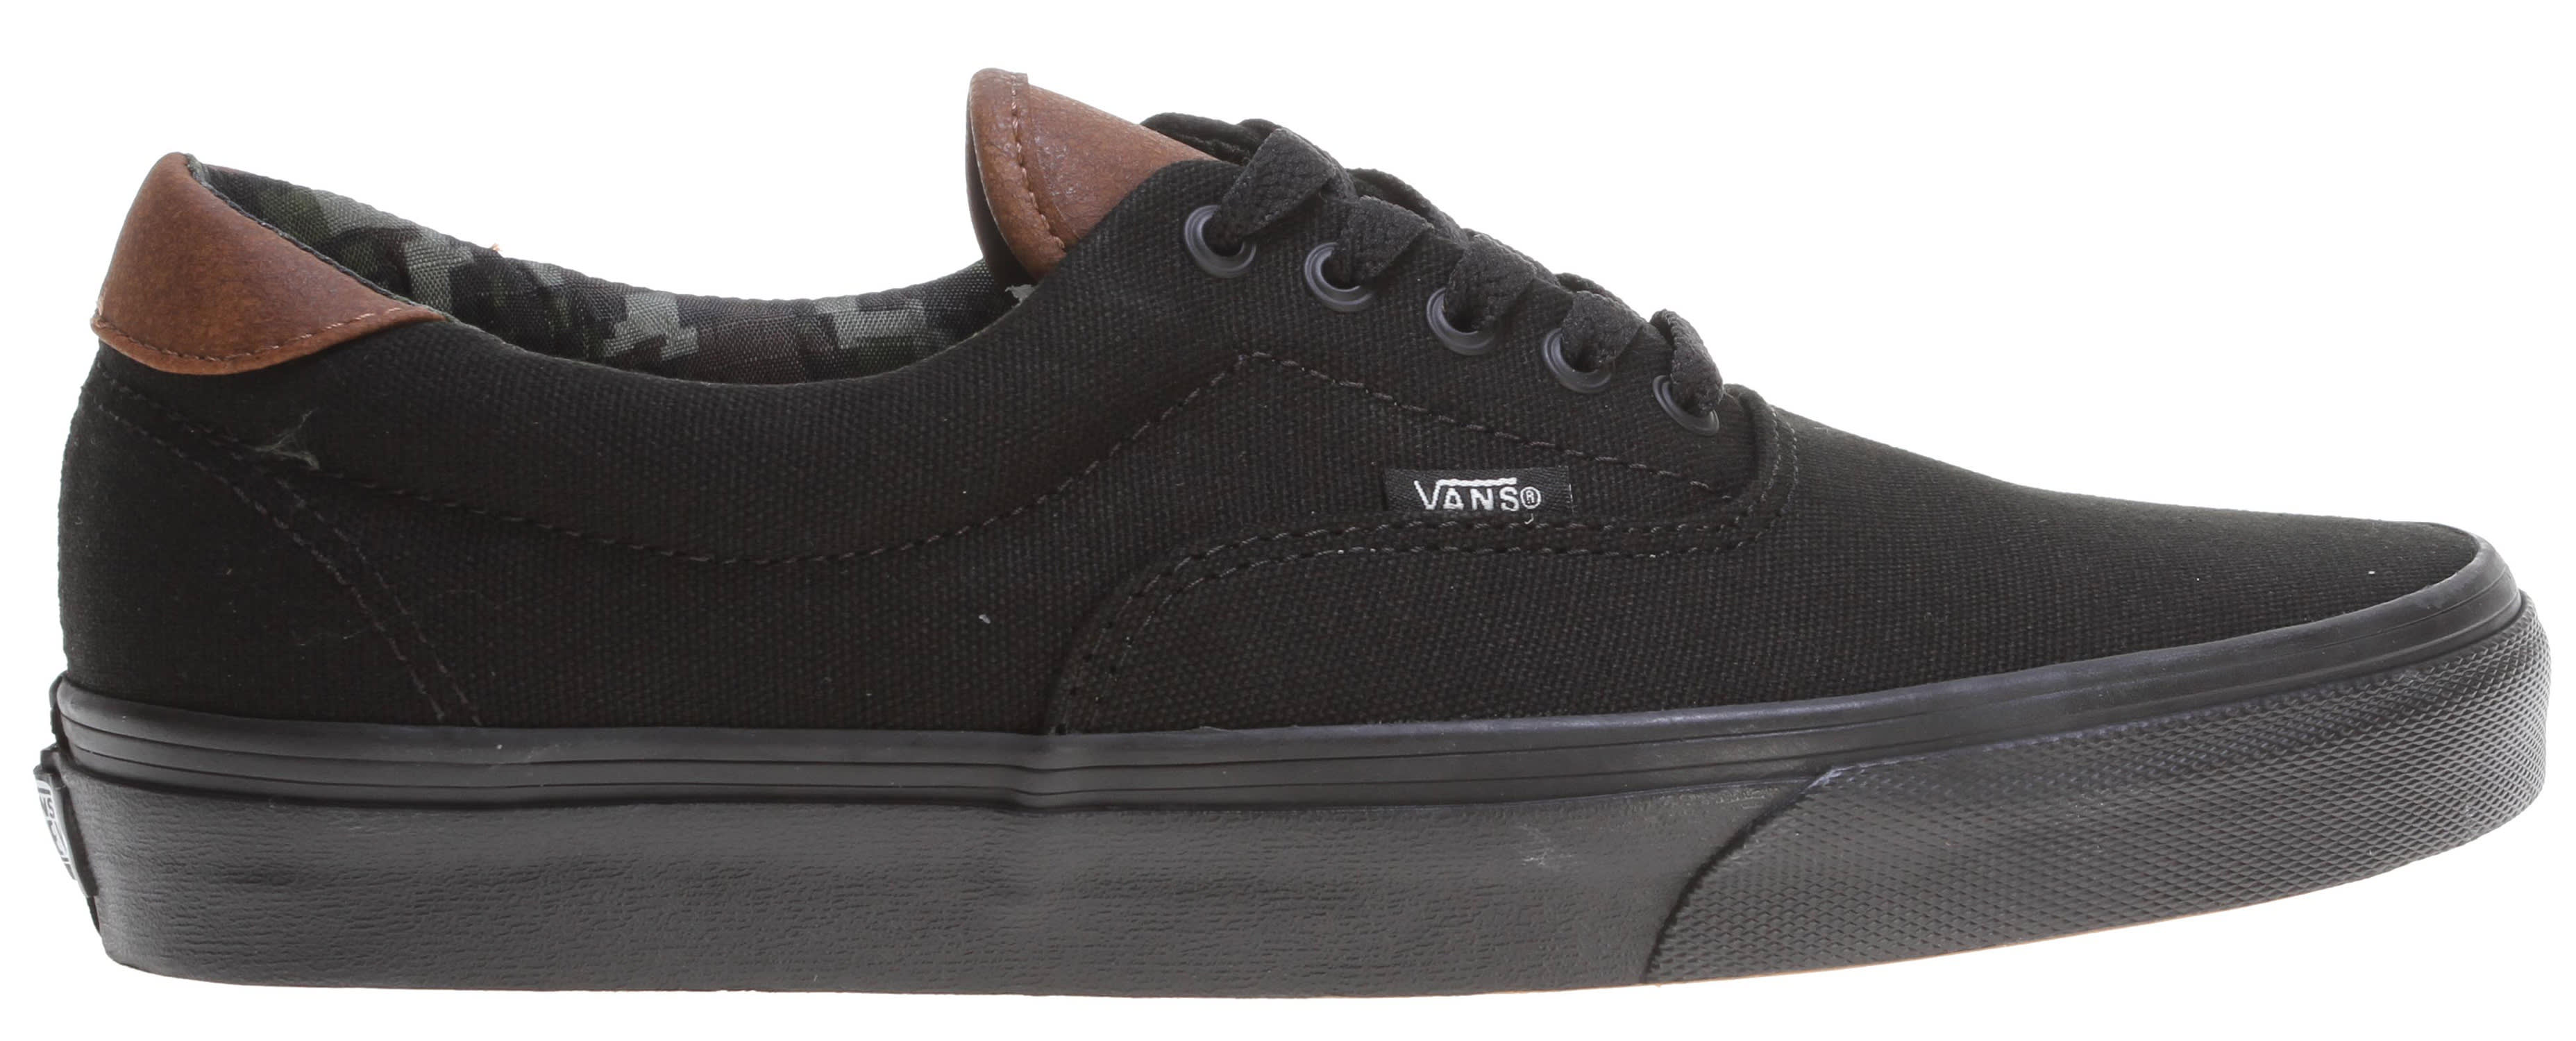 e218fe16b32c8f Vans Era 59 Skate Shoes - thumbnail 1